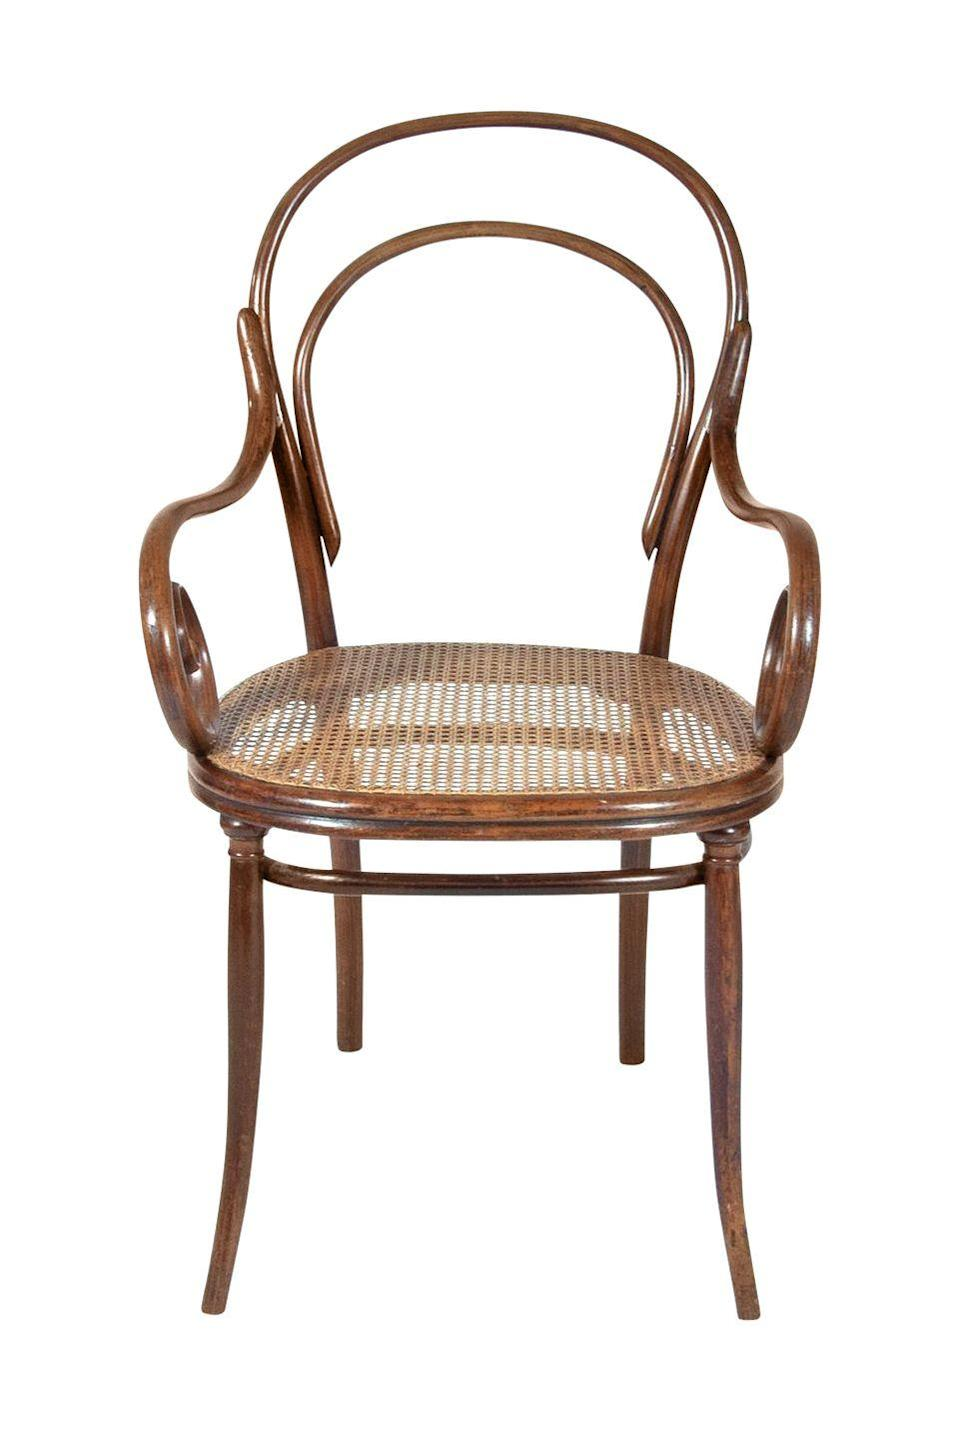 """<p><strong>What it was worth (1985): </strong>$350</p><p><strong>What it's worth now:</strong> $500</p><p><a href=""""https://www.ebay.com/itm/Early-Original-Thonet-Austria-Bentwood-Wood-Ice-Cream-Parlor-Chair-Vintage/302843409969"""" rel=""""nofollow noopener"""" target=""""_blank"""" data-ylk=""""slk:This style of furniture"""" class=""""link rapid-noclick-resp"""">This style of furniture</a> was invented by Michael Thonet, a furniture maker born way back in 1796.</p>"""